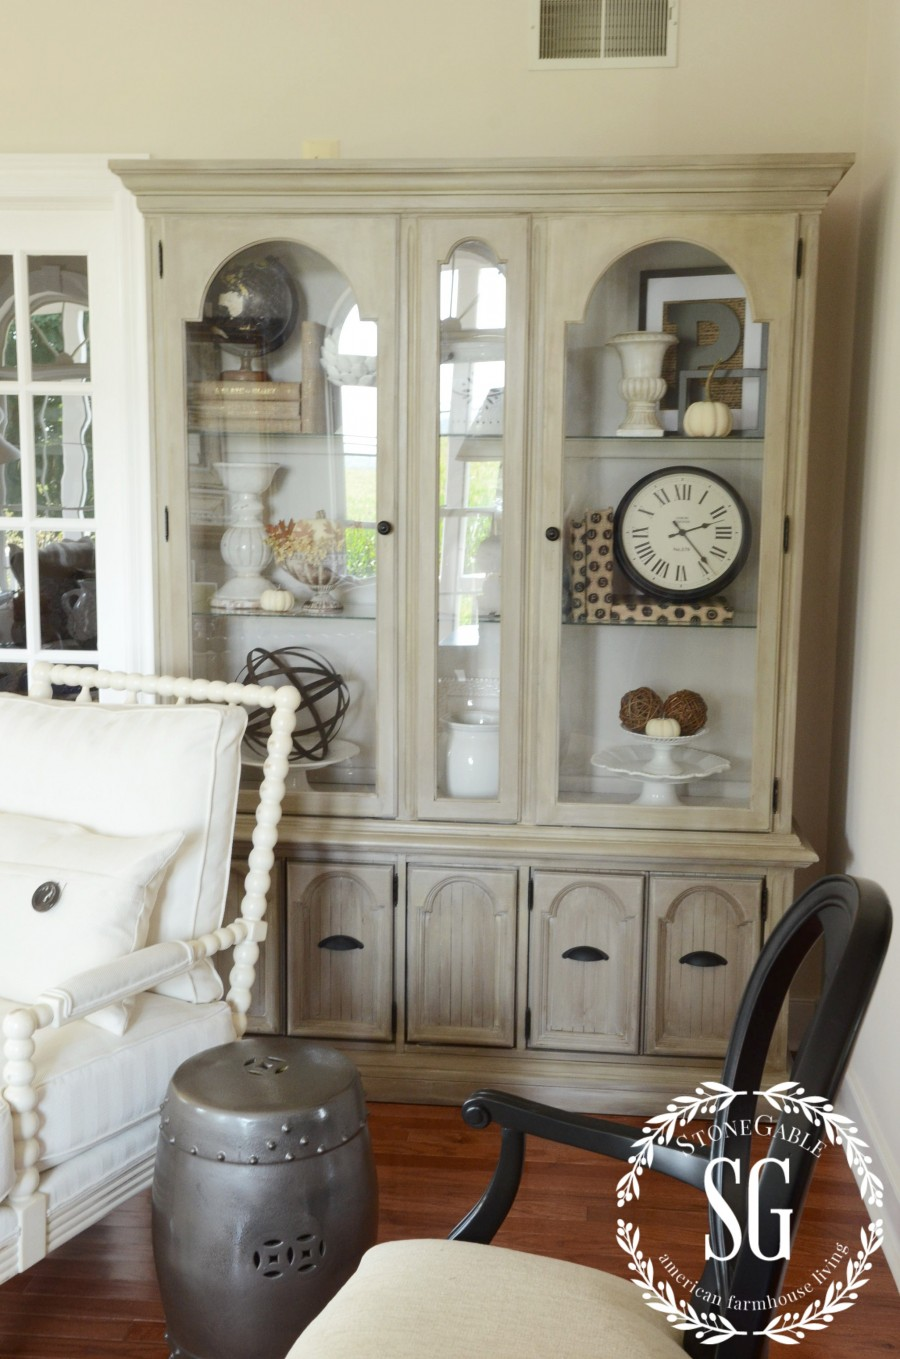 5 easy tips to style a hutch stonegable for Living room hutch